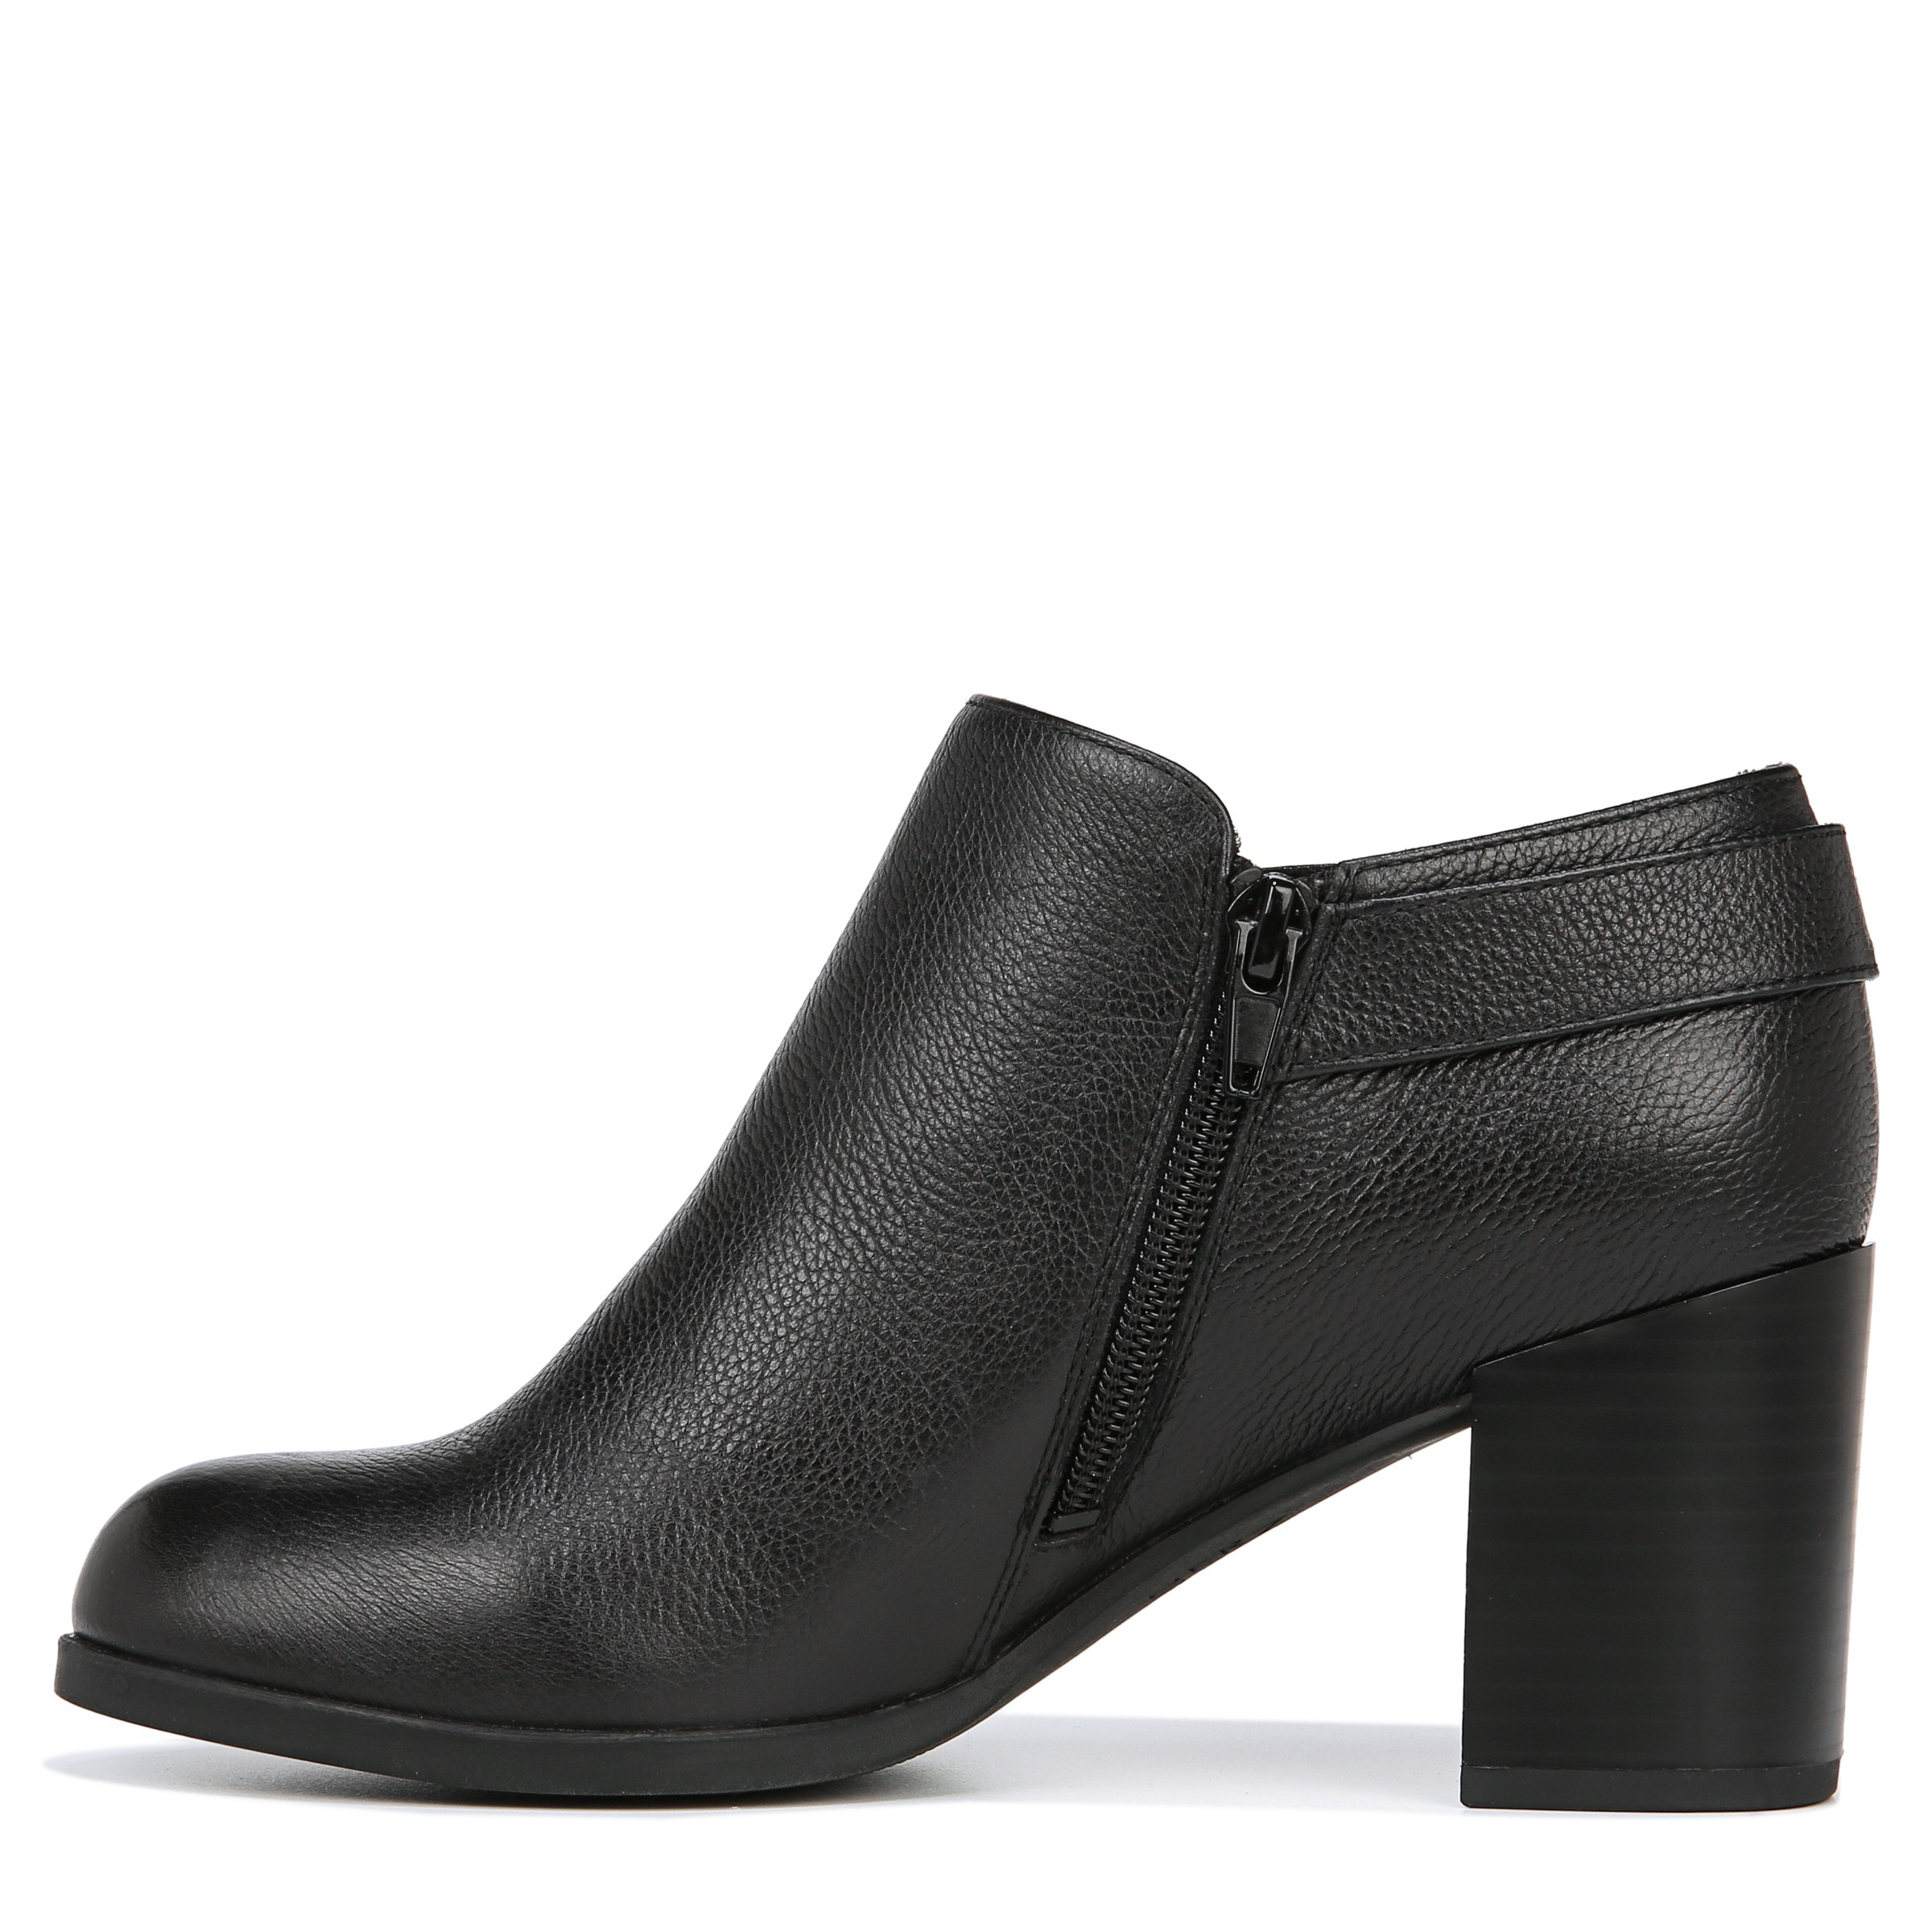 HARLEY_ ANKLE BOOTS IN BLACK